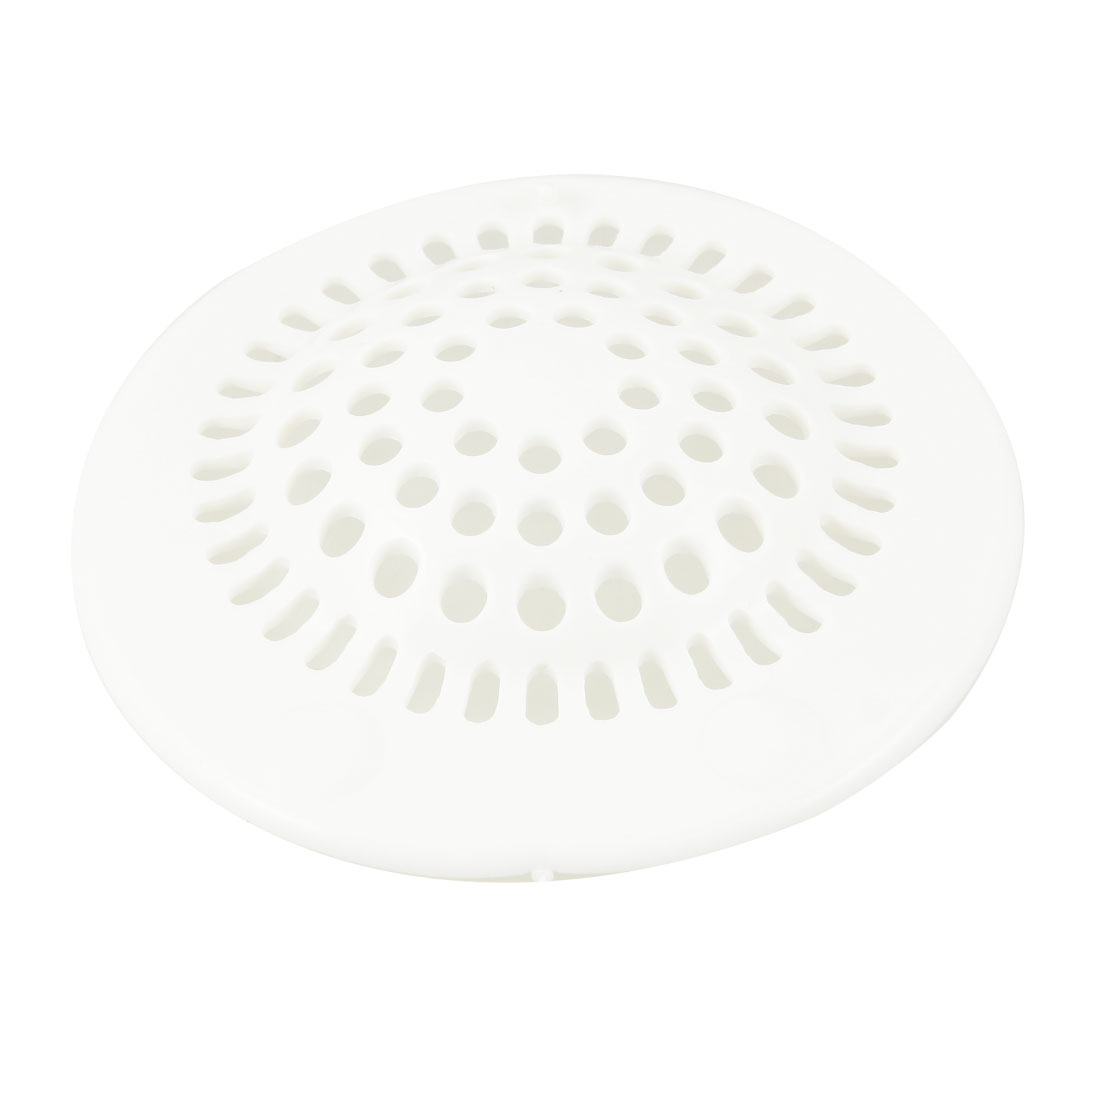 Bathroom 3.9 Inch Sink Floor Drain Screen Hair Filtering Sticker White